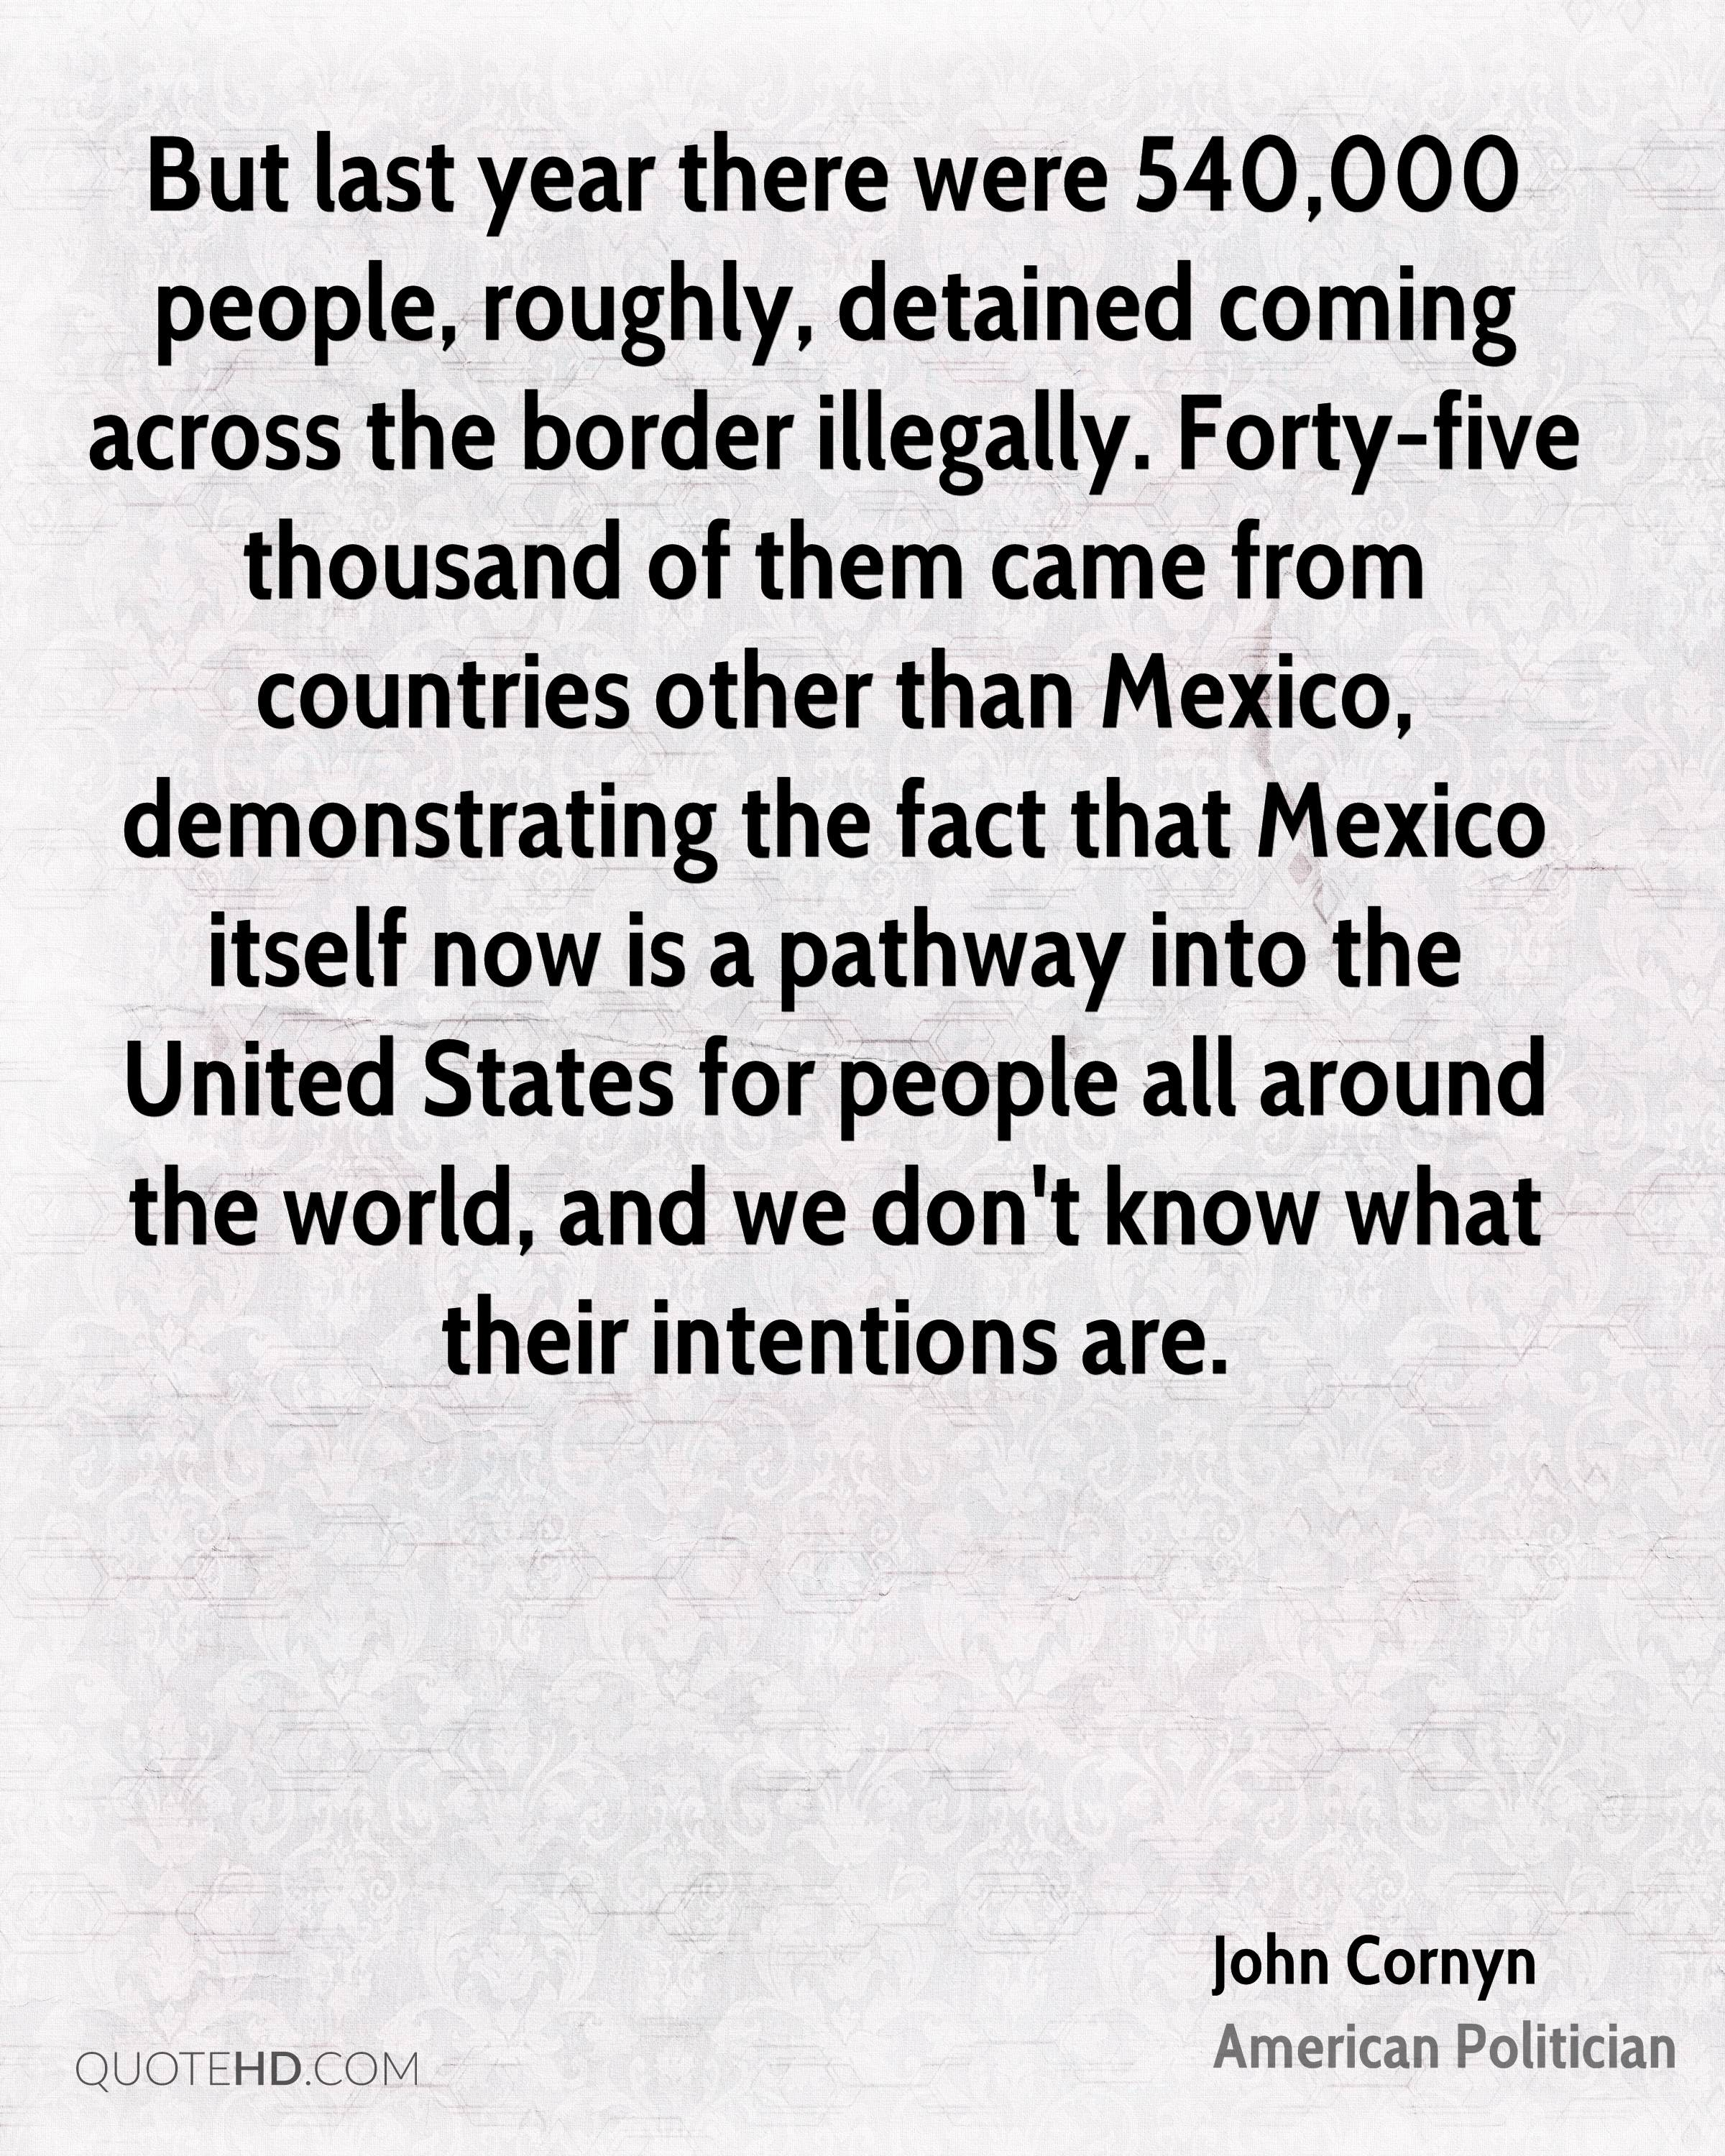 But last year there were 540,000 people, roughly, detained coming across the border illegally. Forty-five thousand of them came from countries other than Mexico, demonstrating the fact that Mexico itself now is a pathway into the United States for people all around the world, and we don't know what their intentions are.